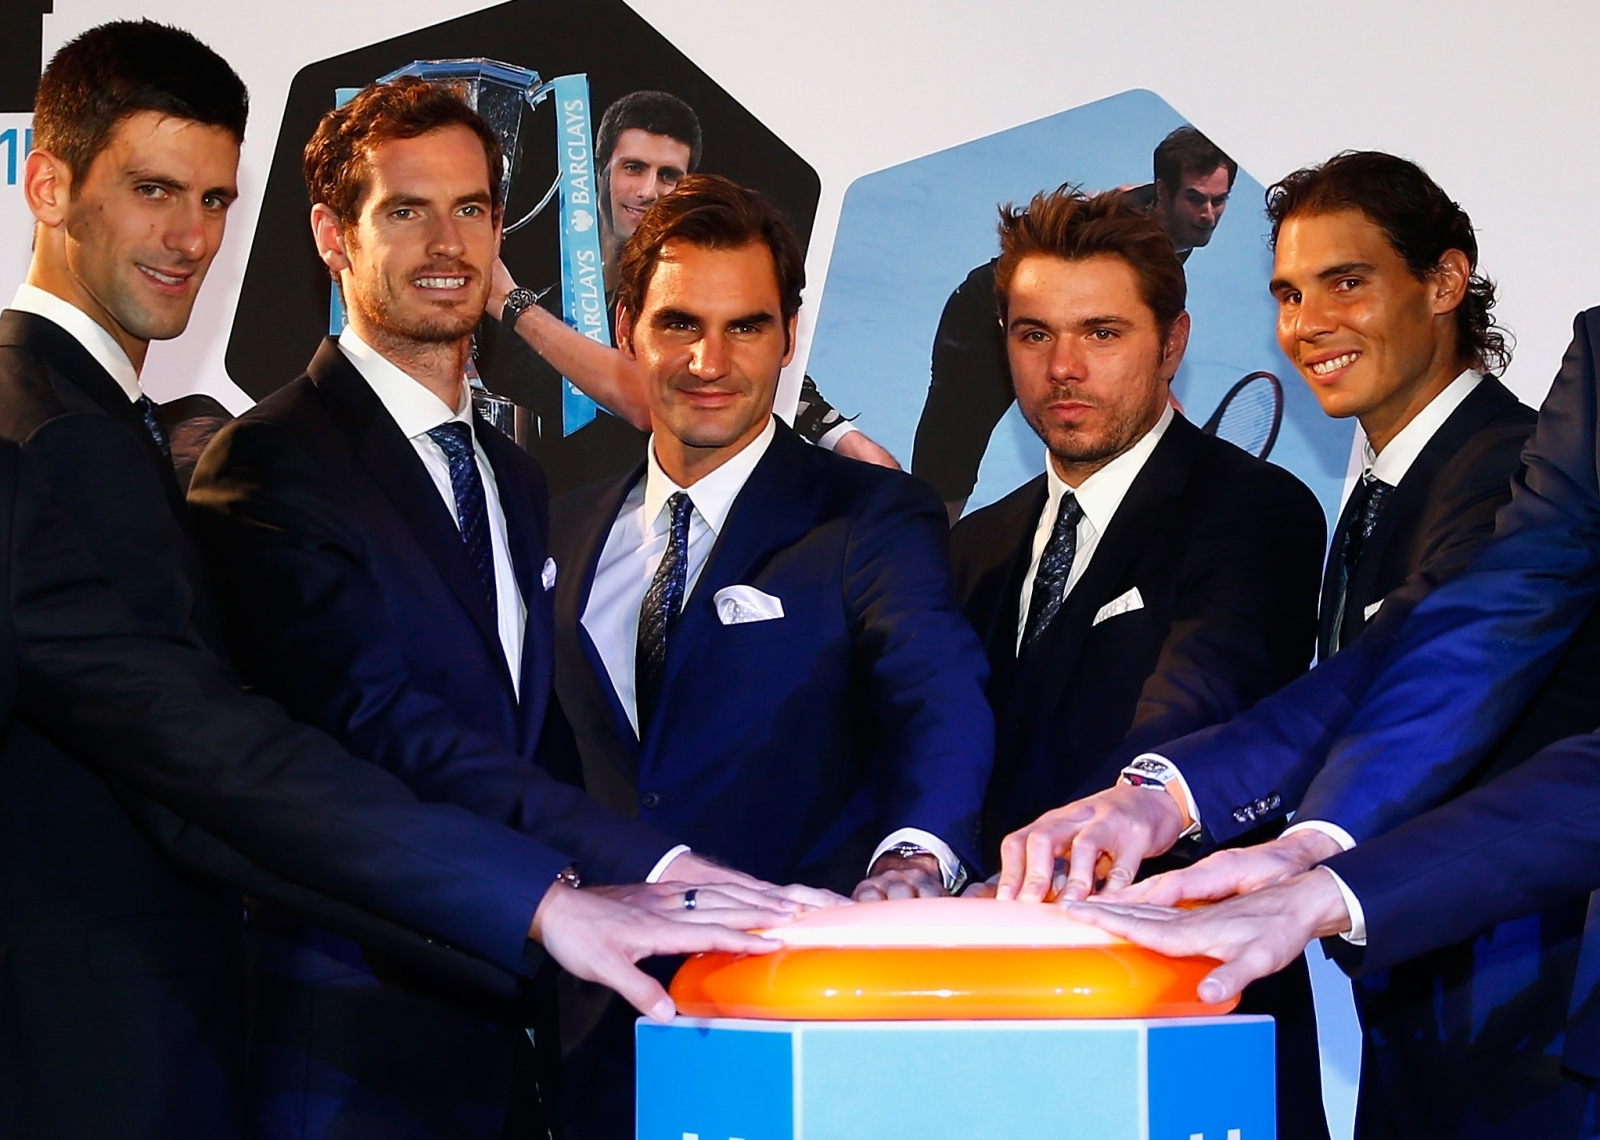 Andy Murray, Roger Federer and Rafael Nadal